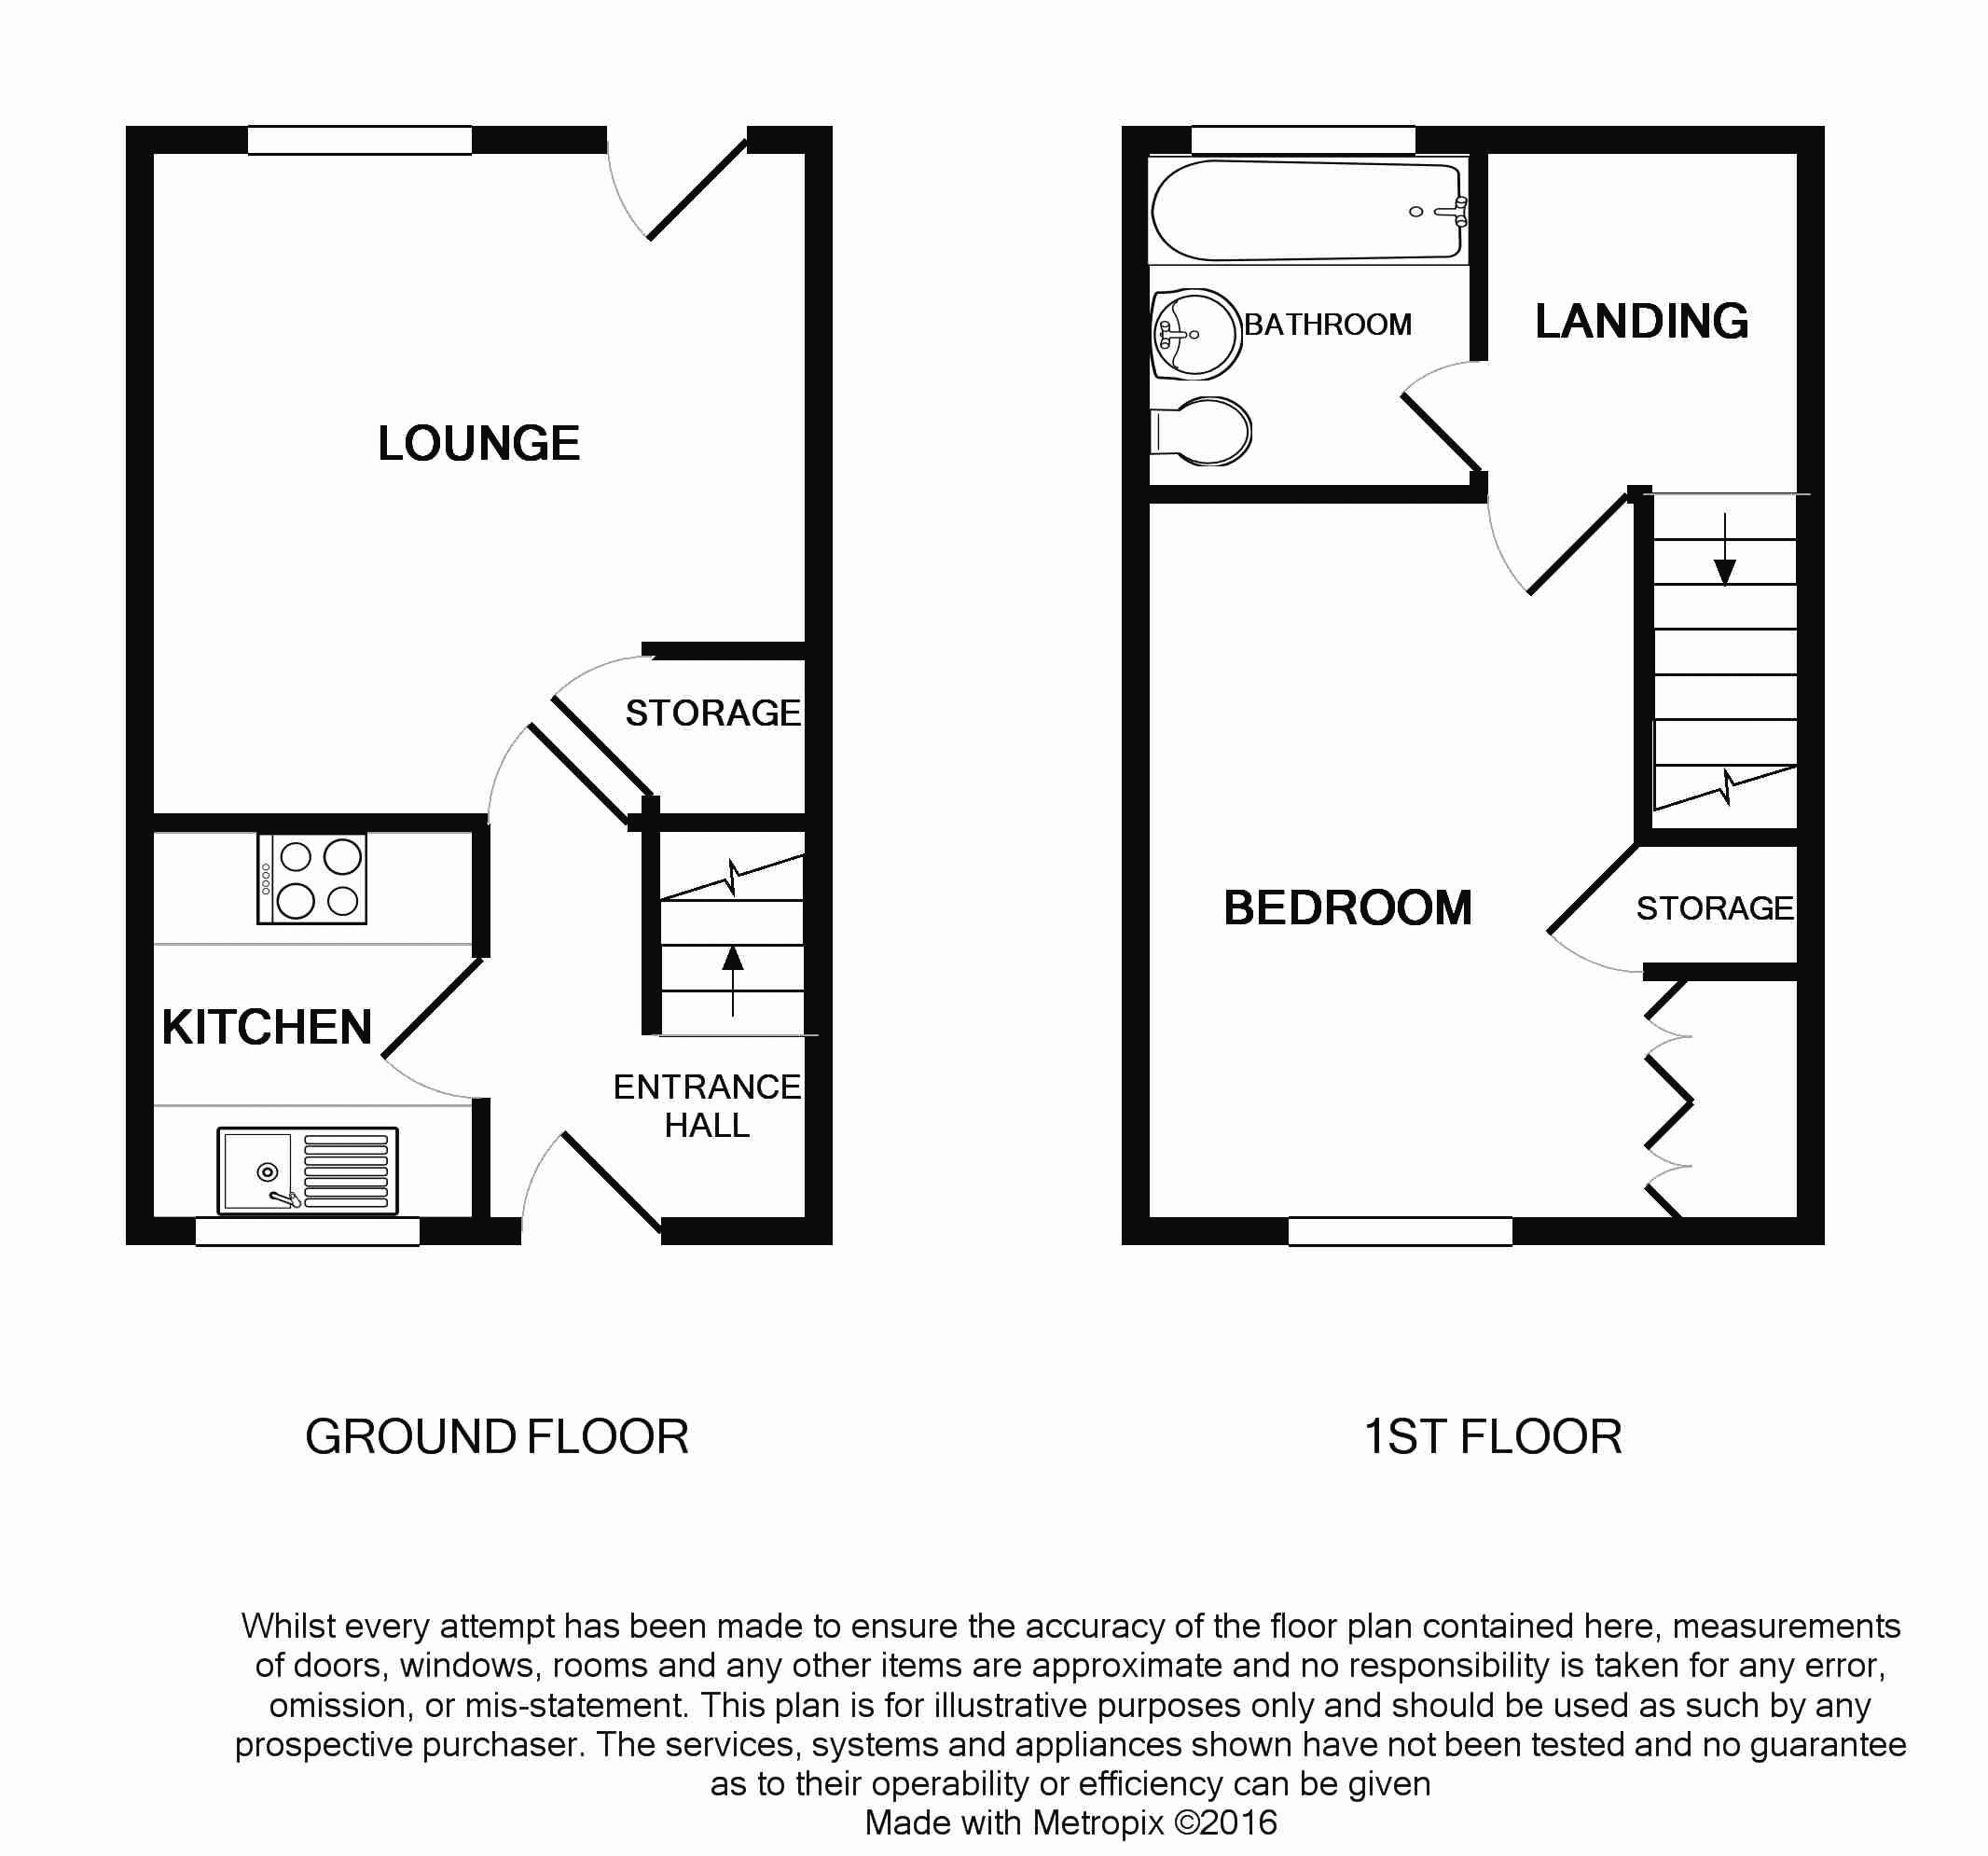 Lakeland crescent bury bl9 1 bedroom mews house for sale for 15 bruyeres mews floor plans